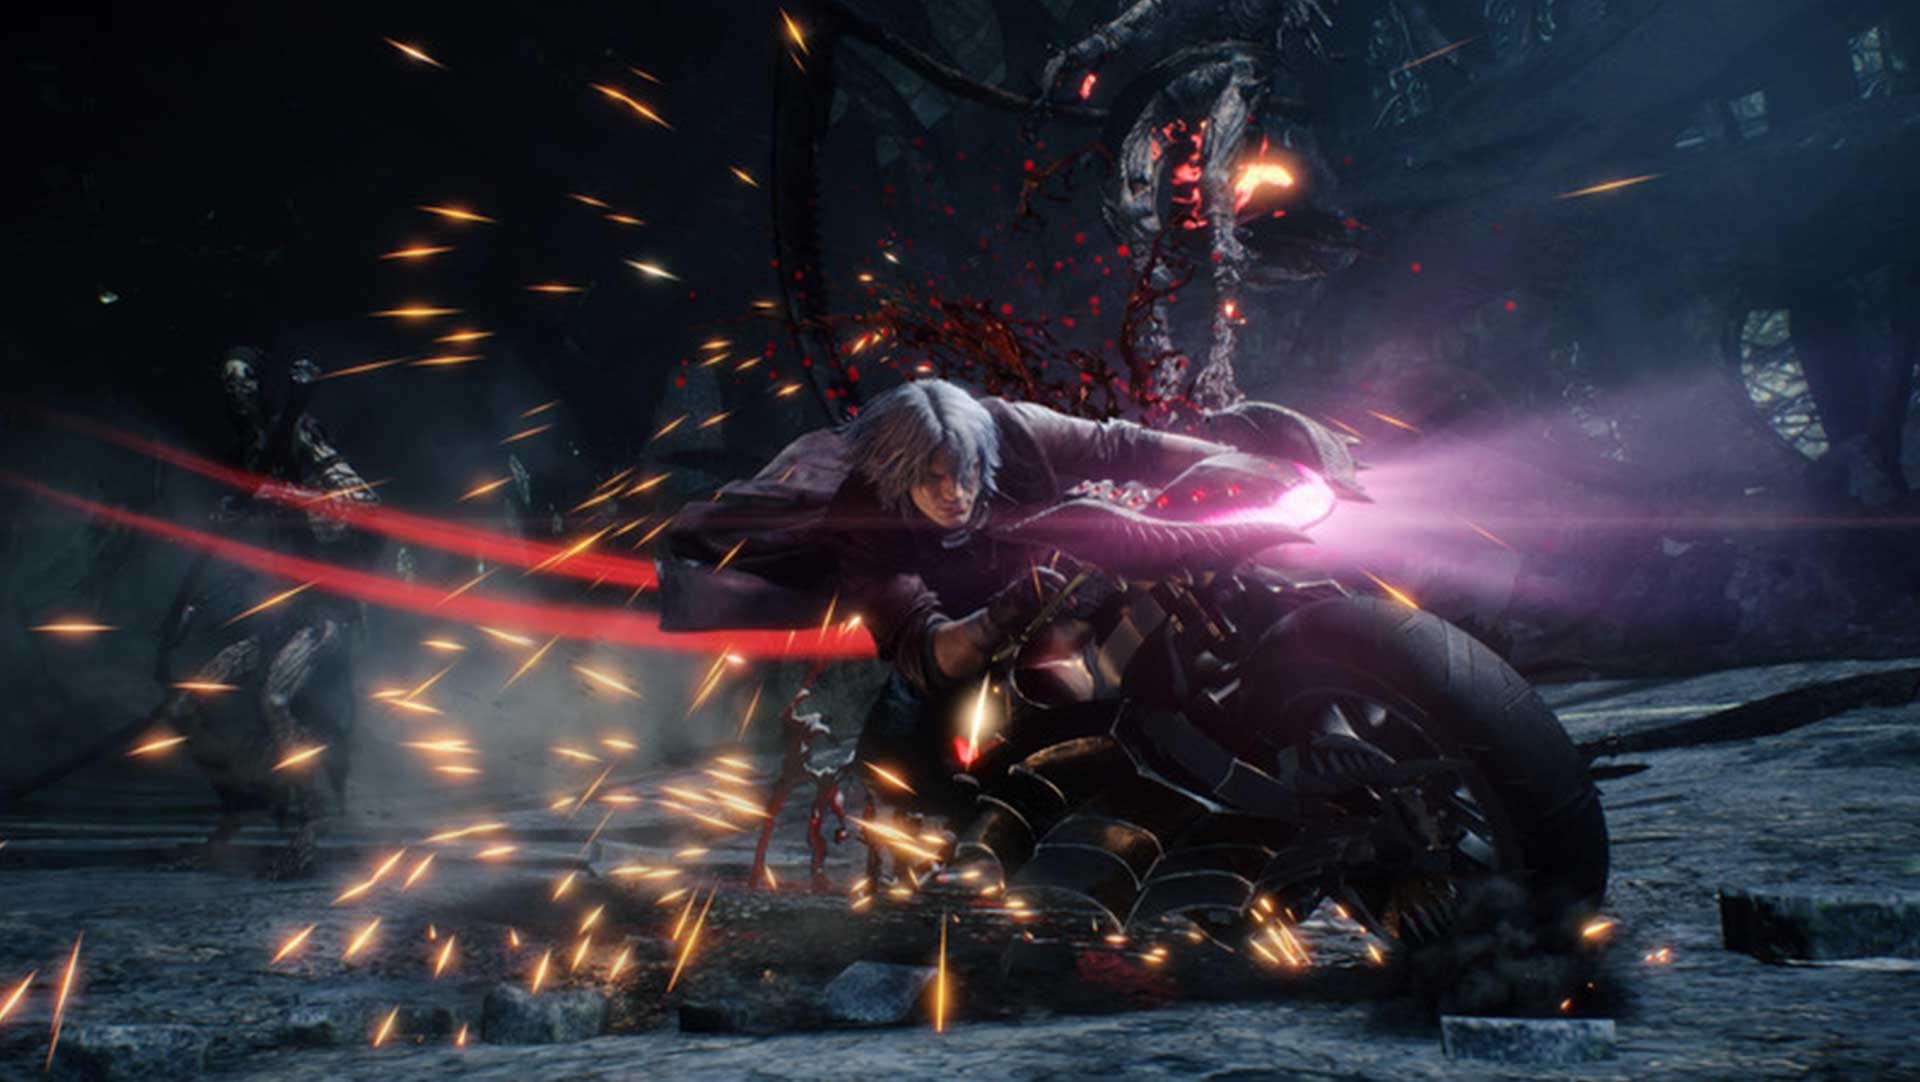 Devil May Cry 5 - Standard Edition game image